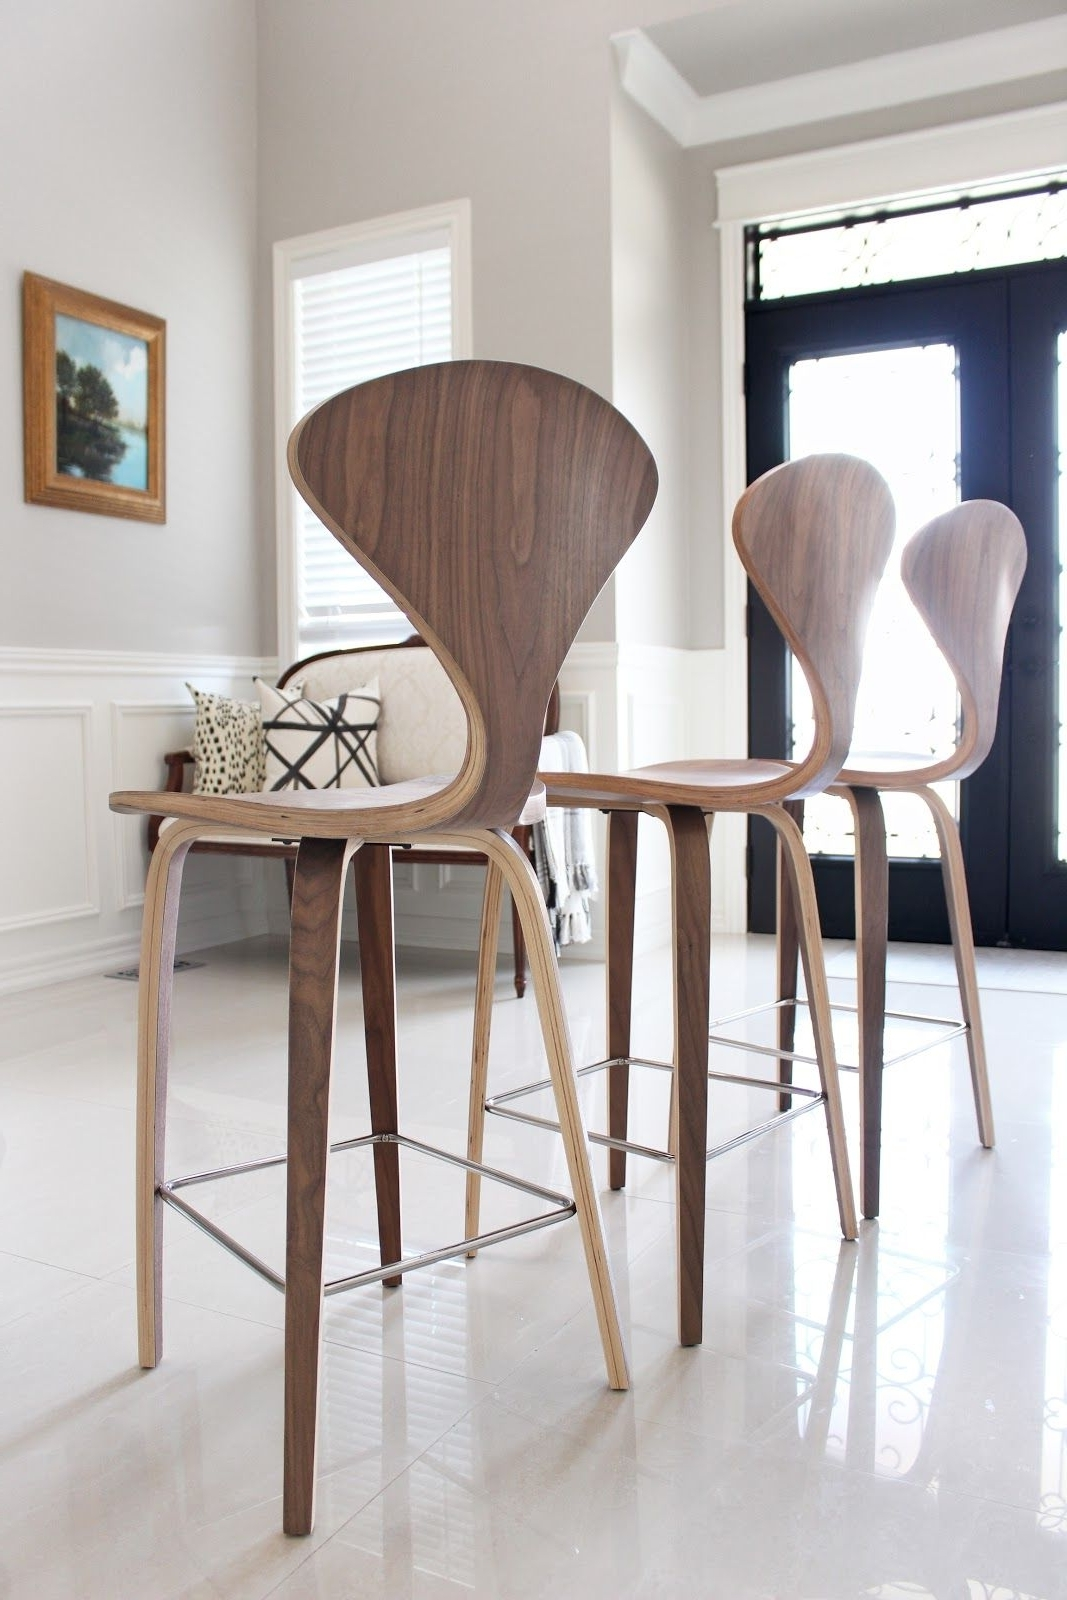 Laurent 7 Piece Counter Sets With Upholstered Counterstools Within Fashionable Norman Cherner Style Counter Stools In Walnut From Rove Concepts (View 11 of 25)